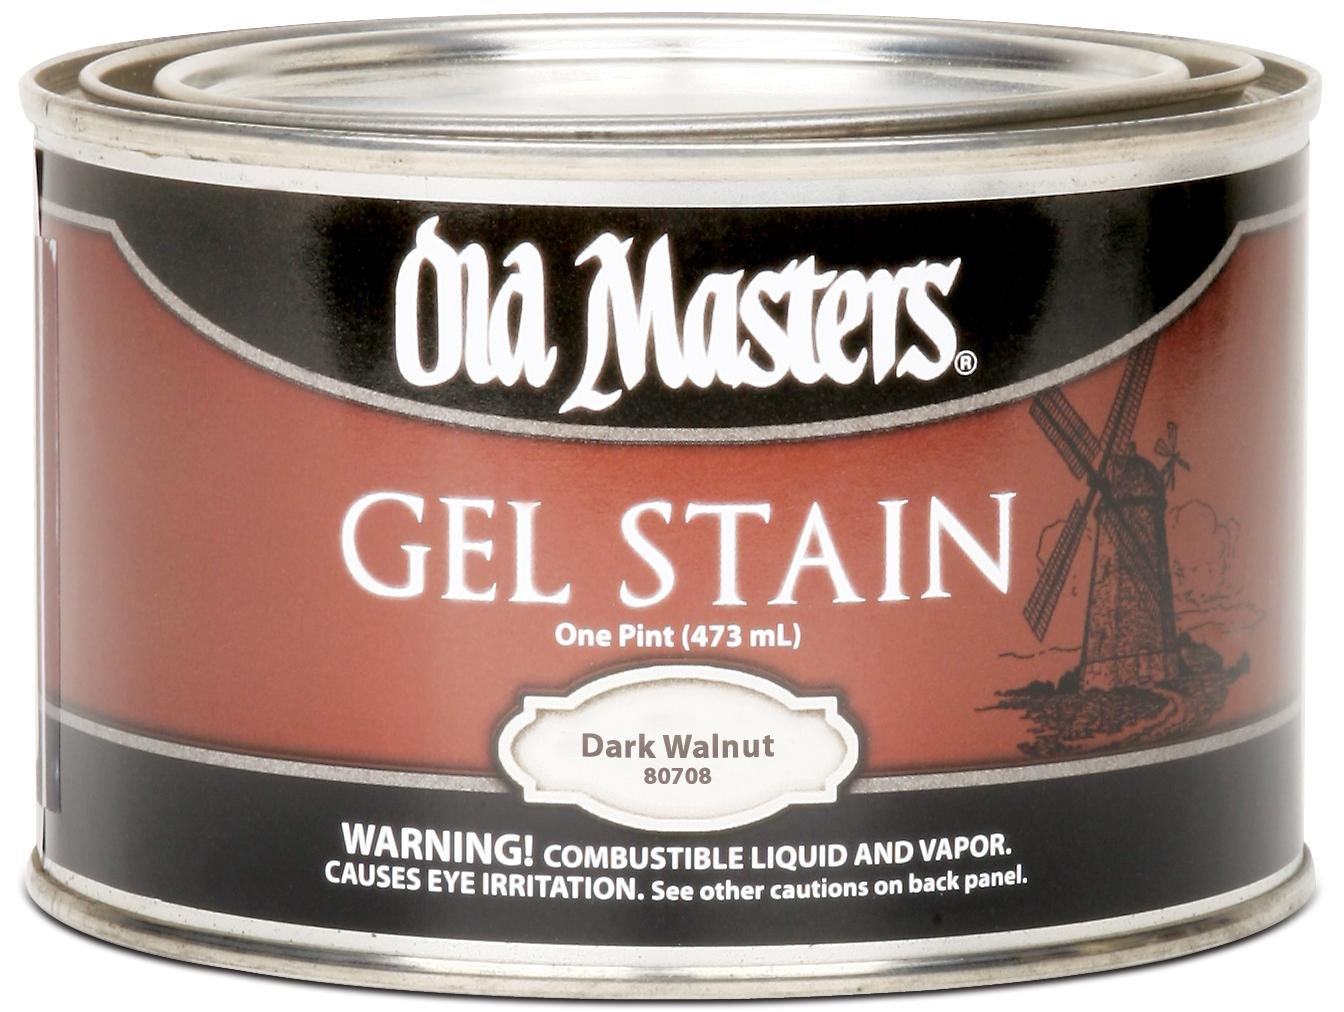 Old masters 80708 gel stain pint dark walnut household wood old masters 80708 gel stain pint dark walnut household wood stains amazon nvjuhfo Image collections